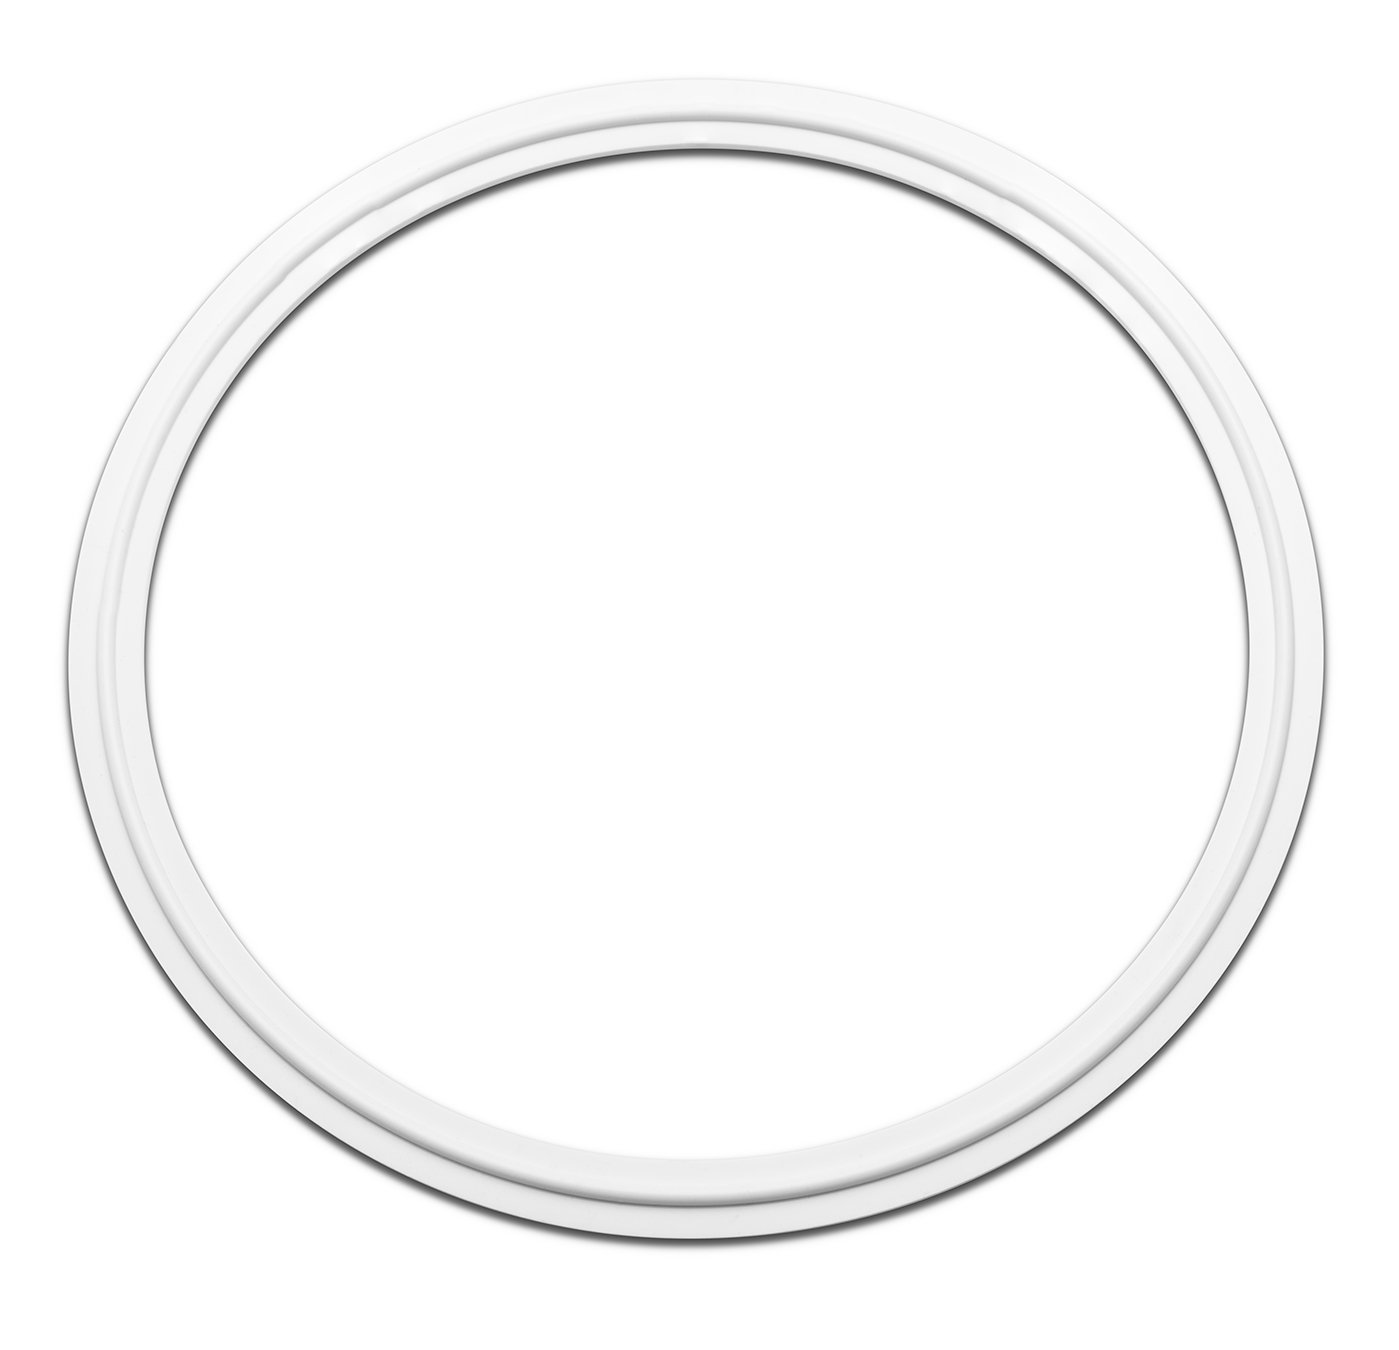 Silicone Tri-Clamp Gaskets Shop All Categories BVV 6-inch